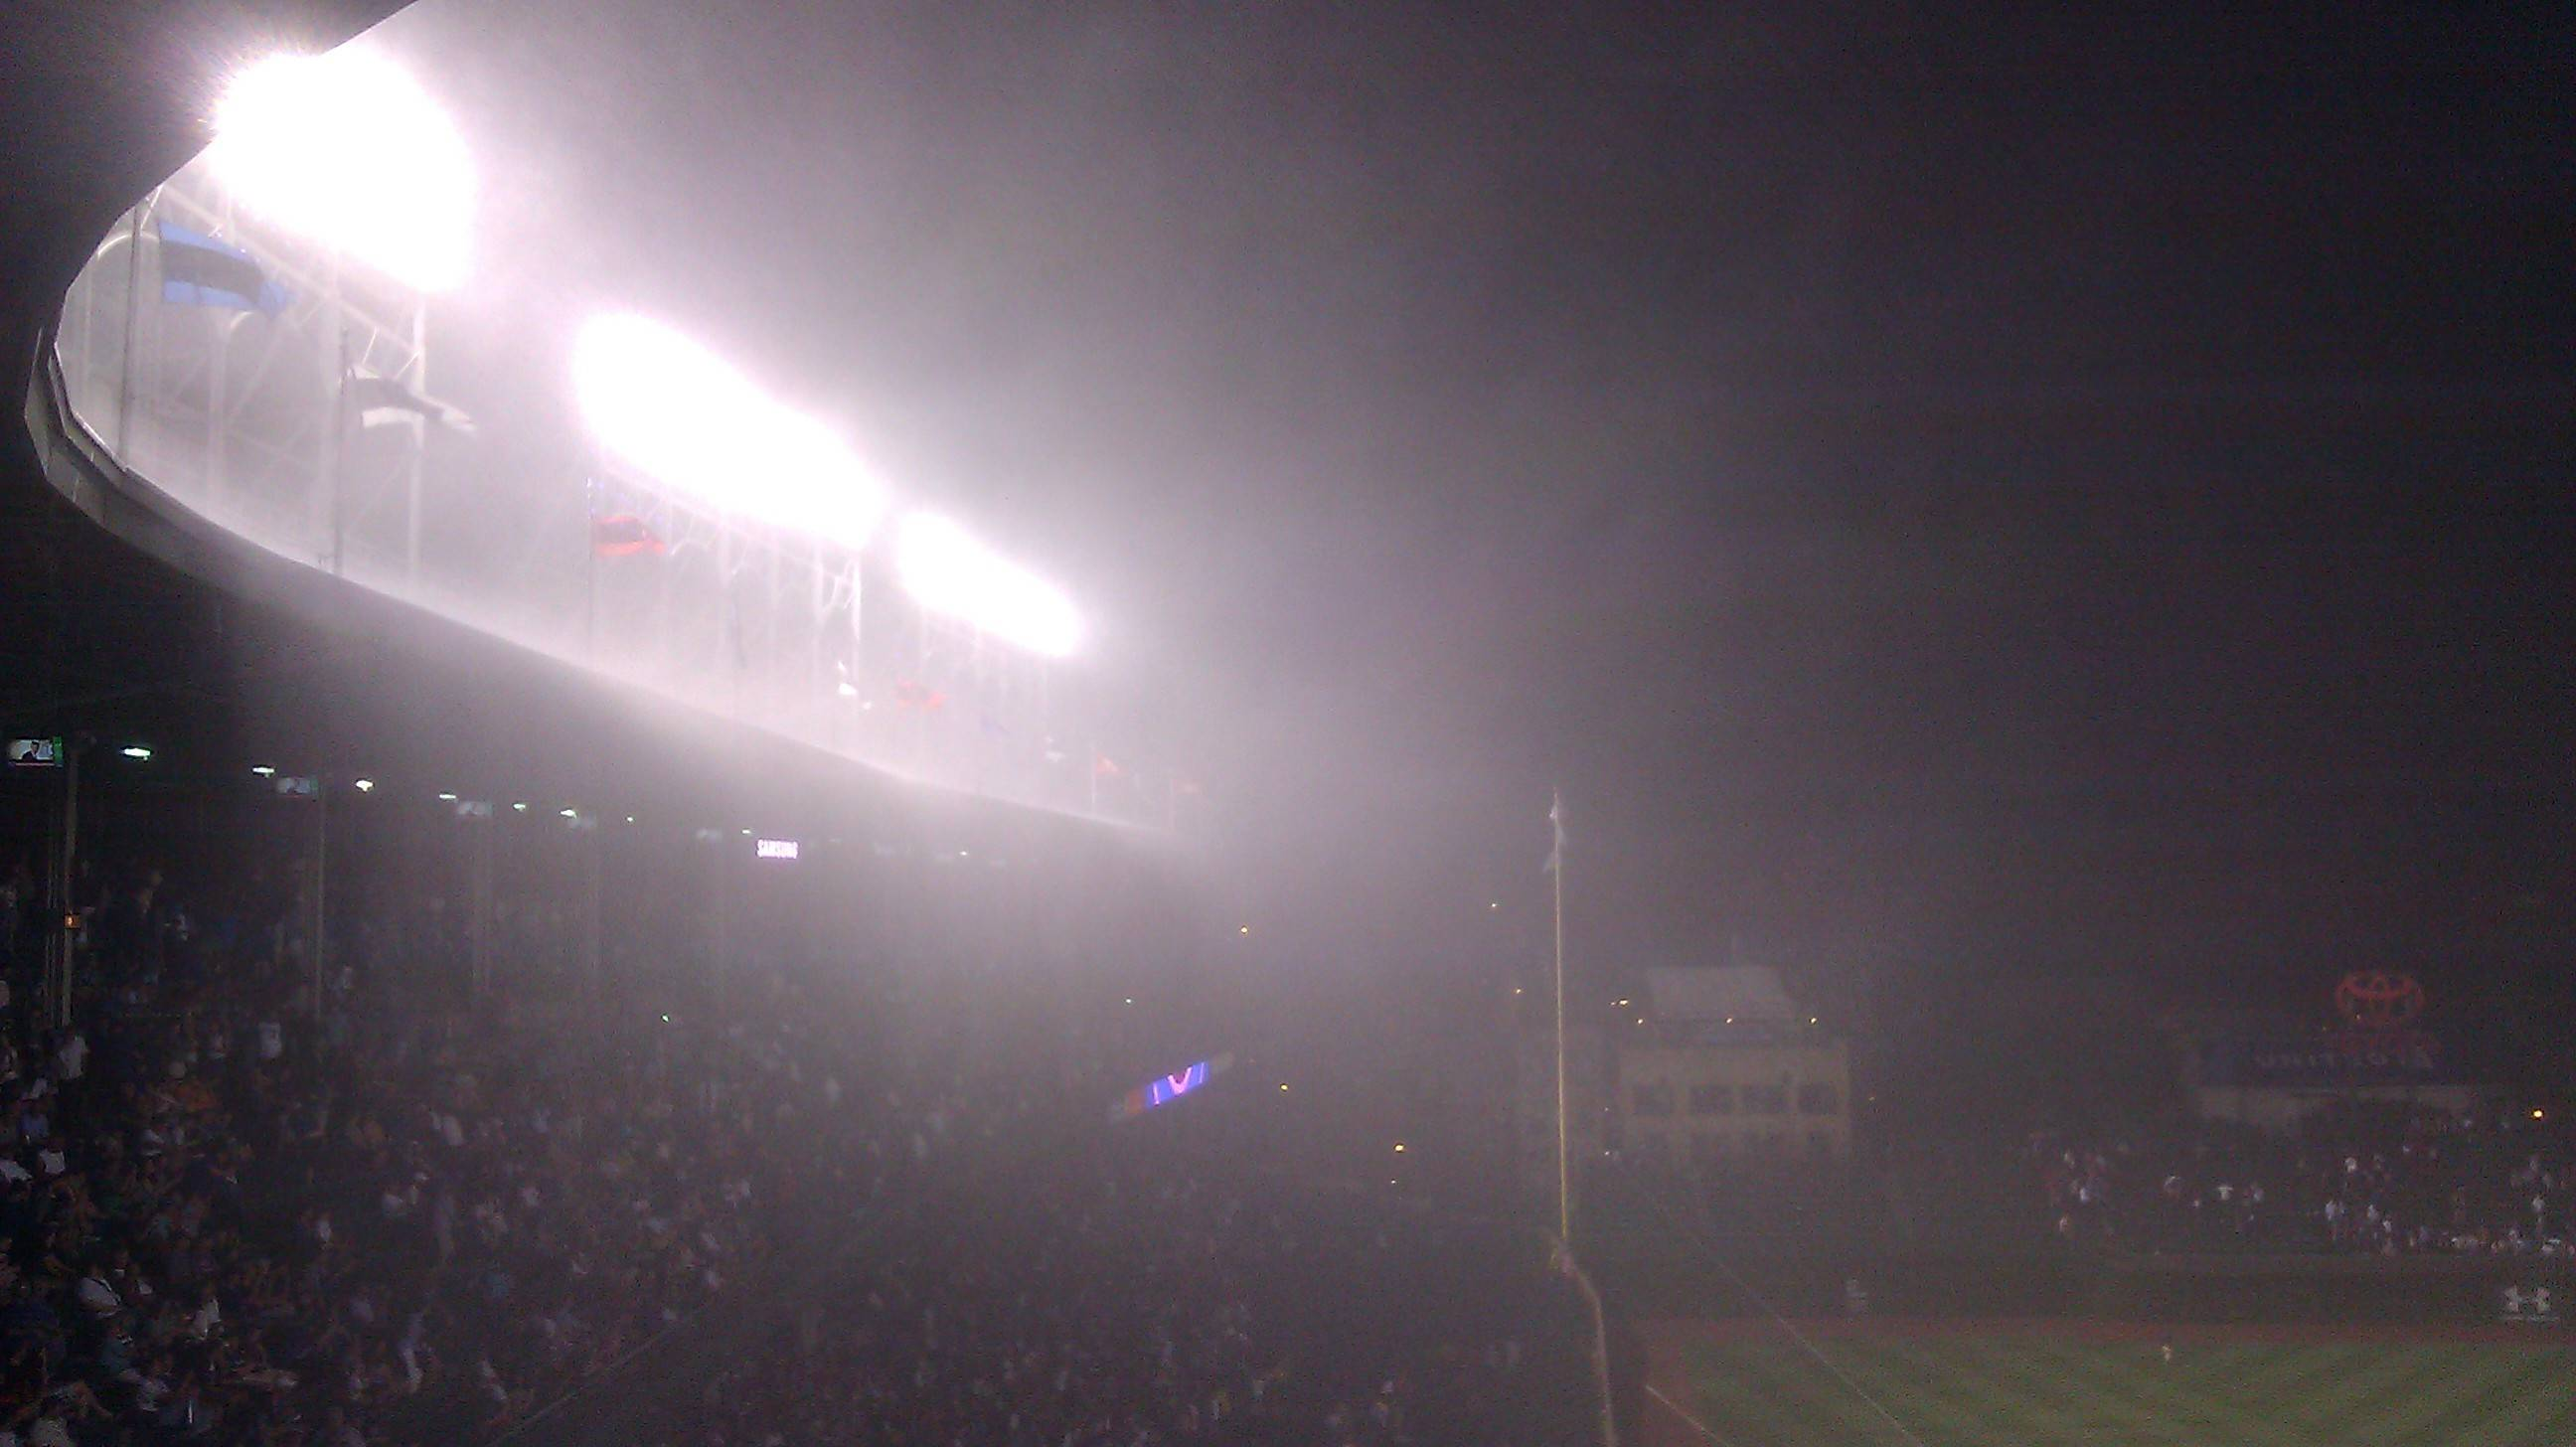 The heavy rain didn't last very long Tuesday night at Wrigley Field, but it was long enough to drench the field not covered by an unsuspecting umpire and grounds crew, so the delay lasted past 1:15 a.m.